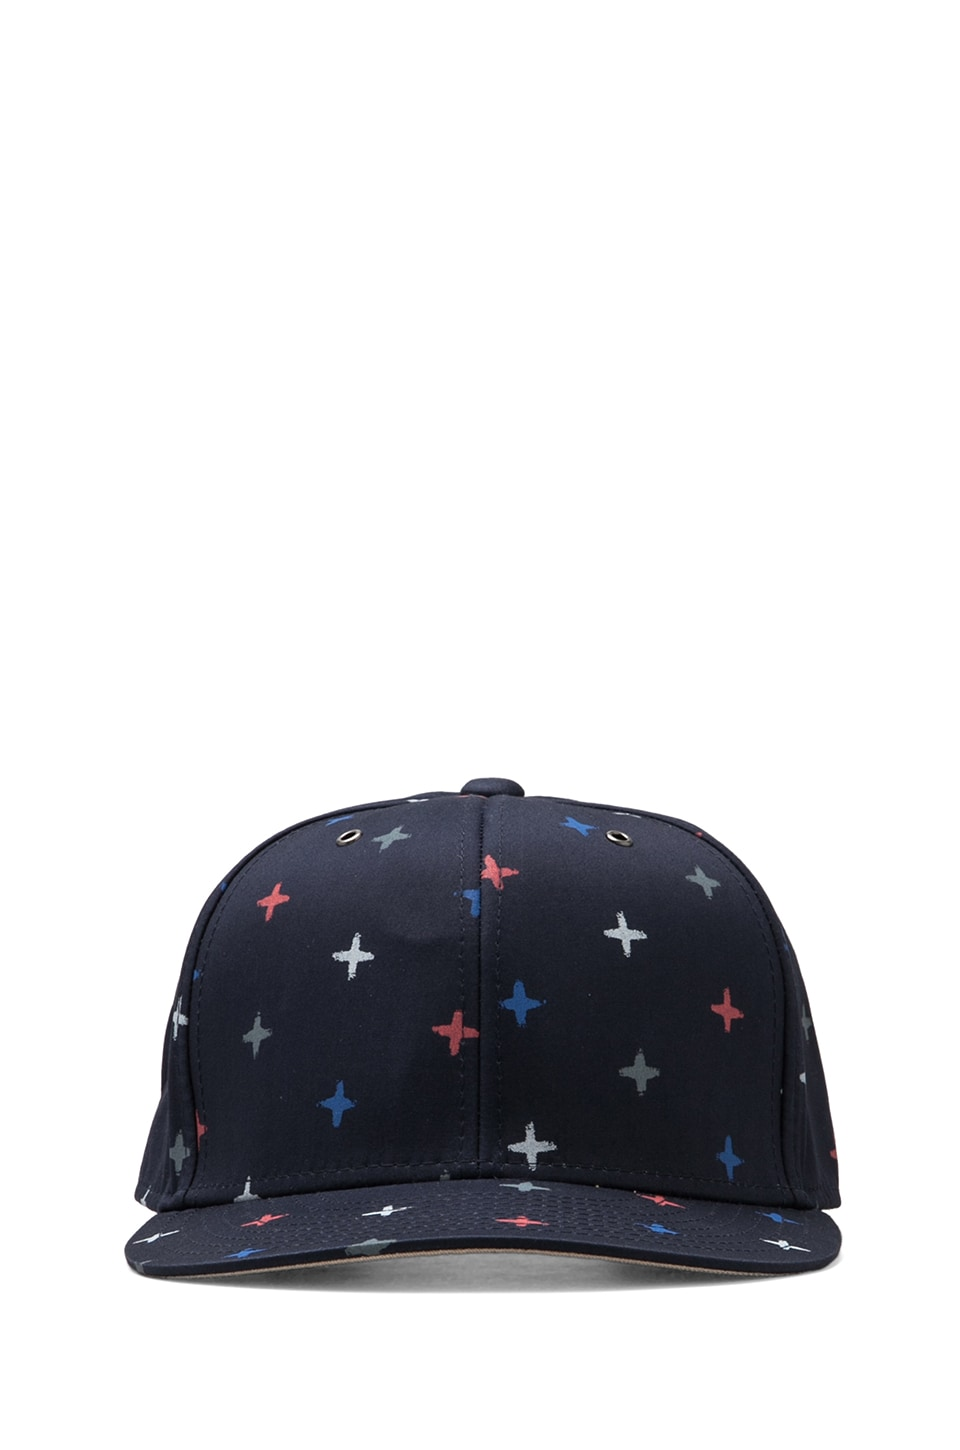 Marc by Marc Jacobs Morris Star Hat in Mood Indigo